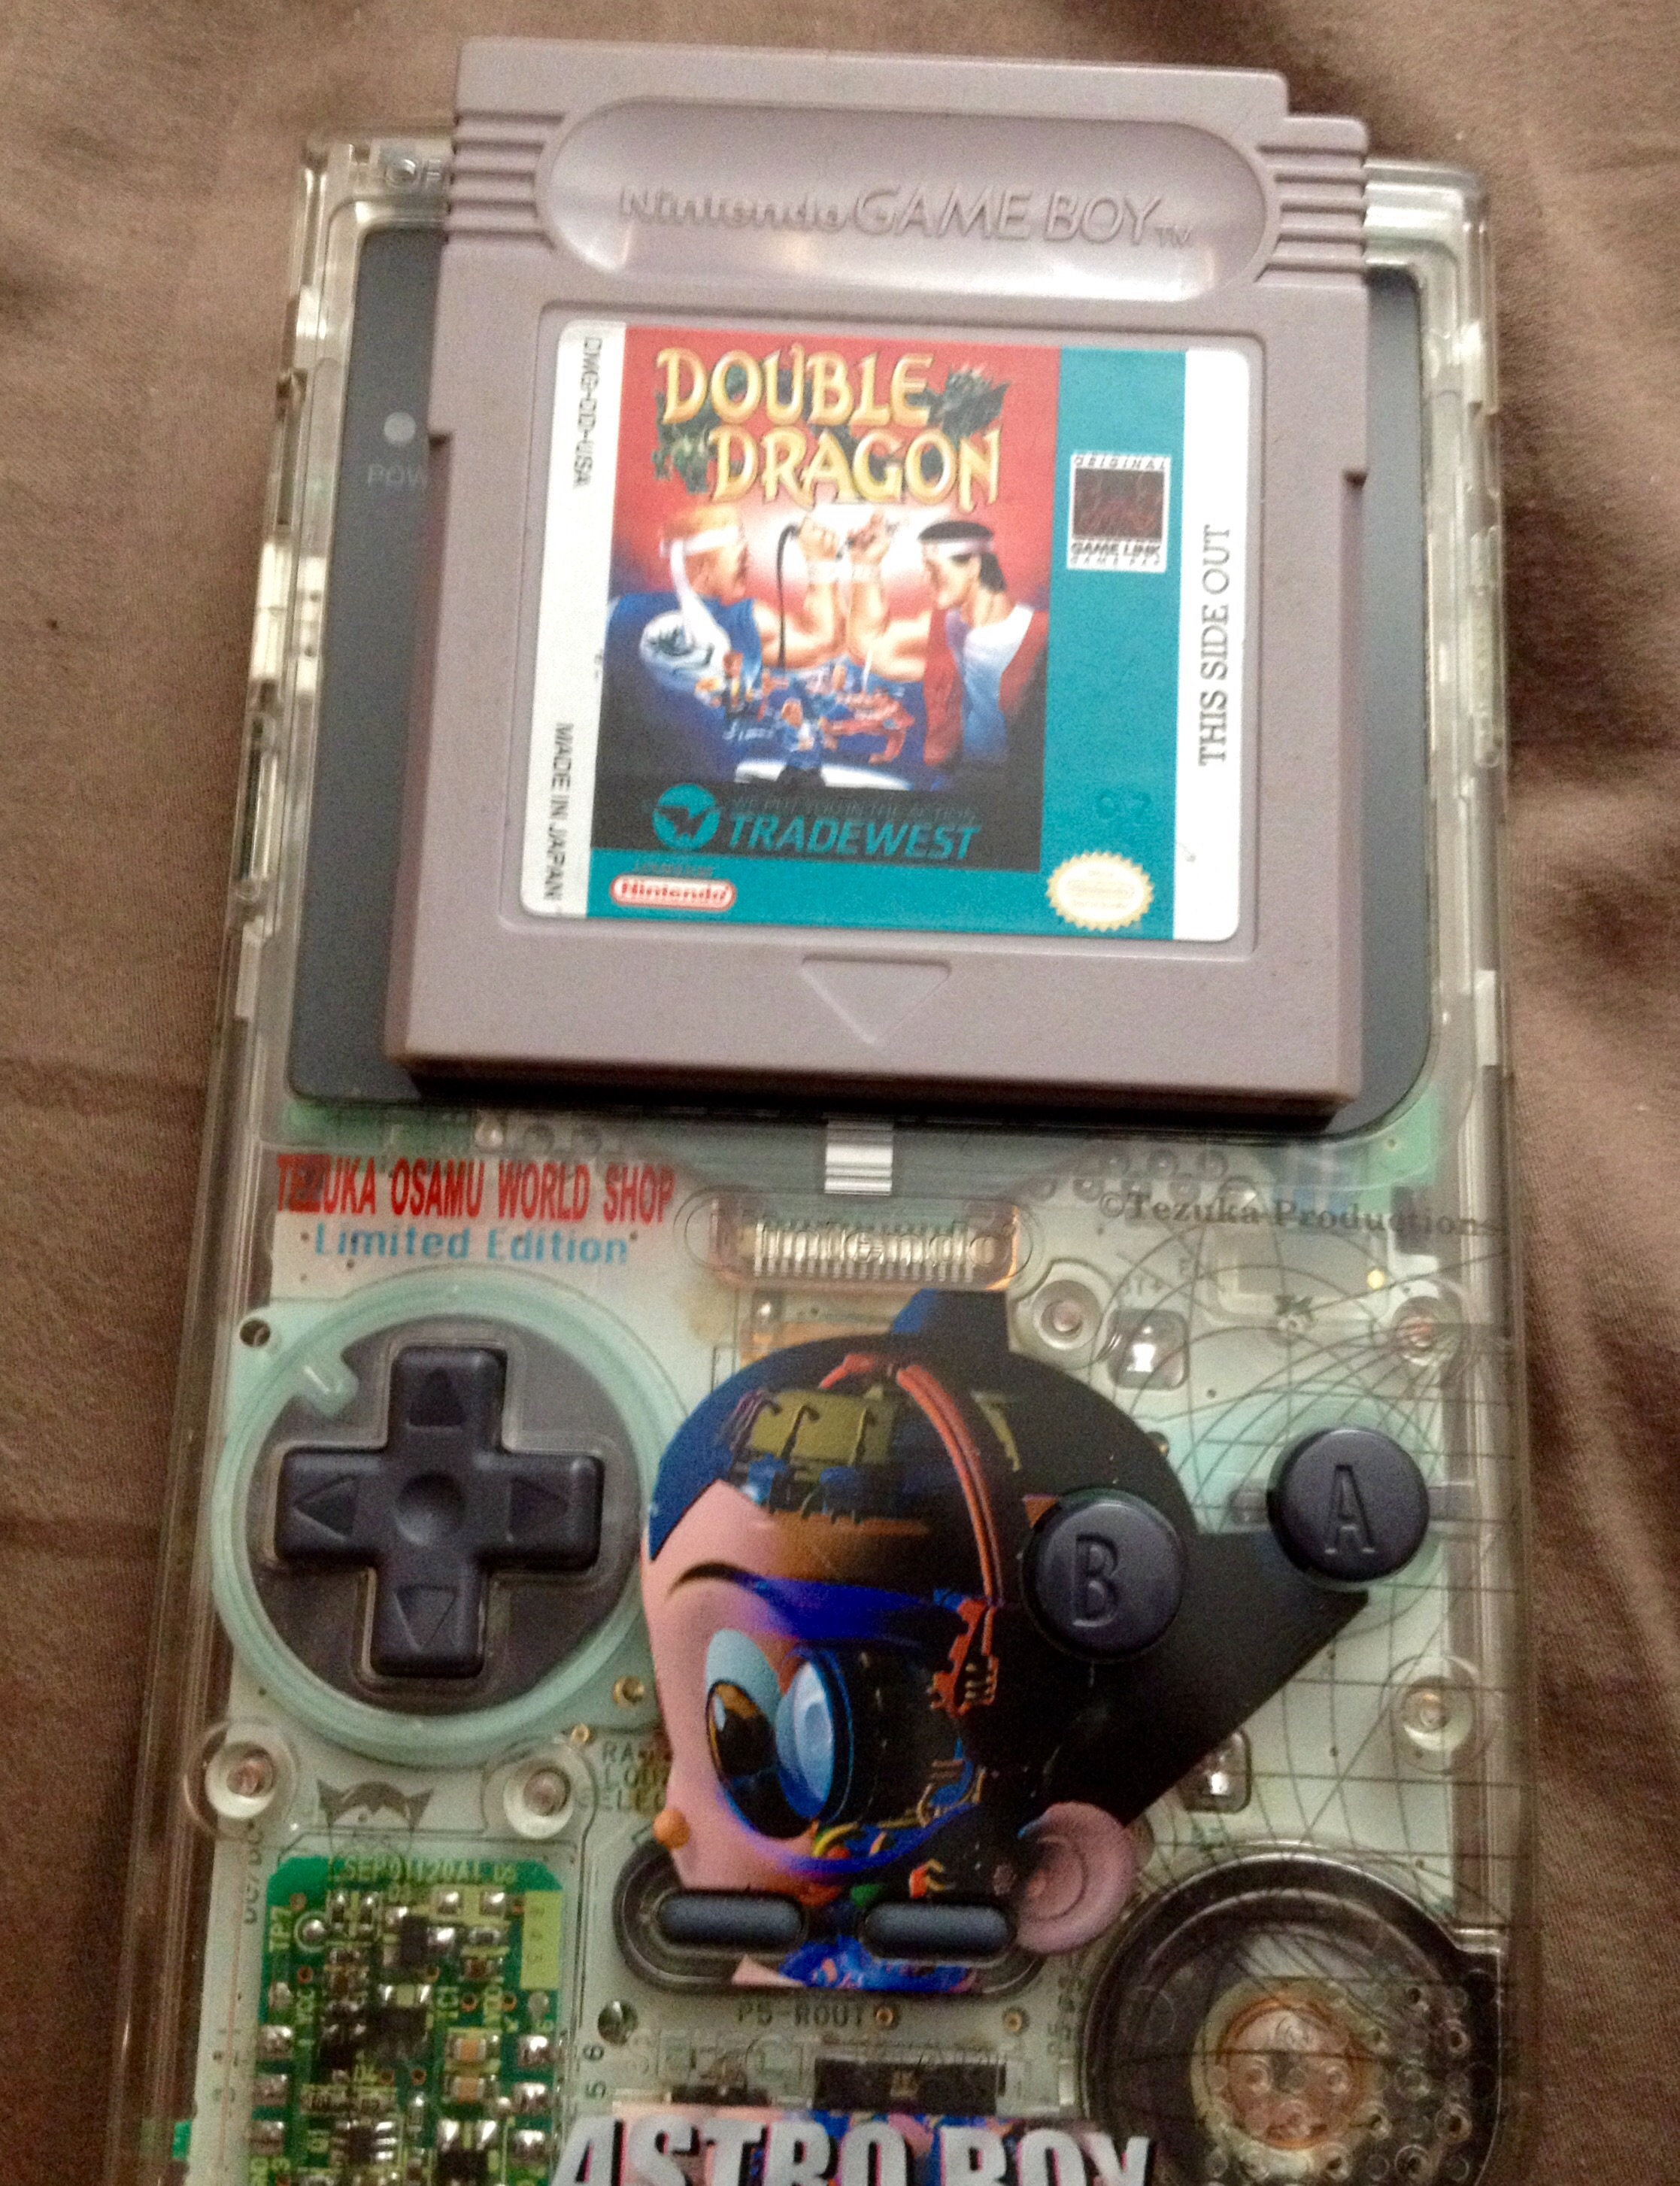 Double Dragon 84,870 points